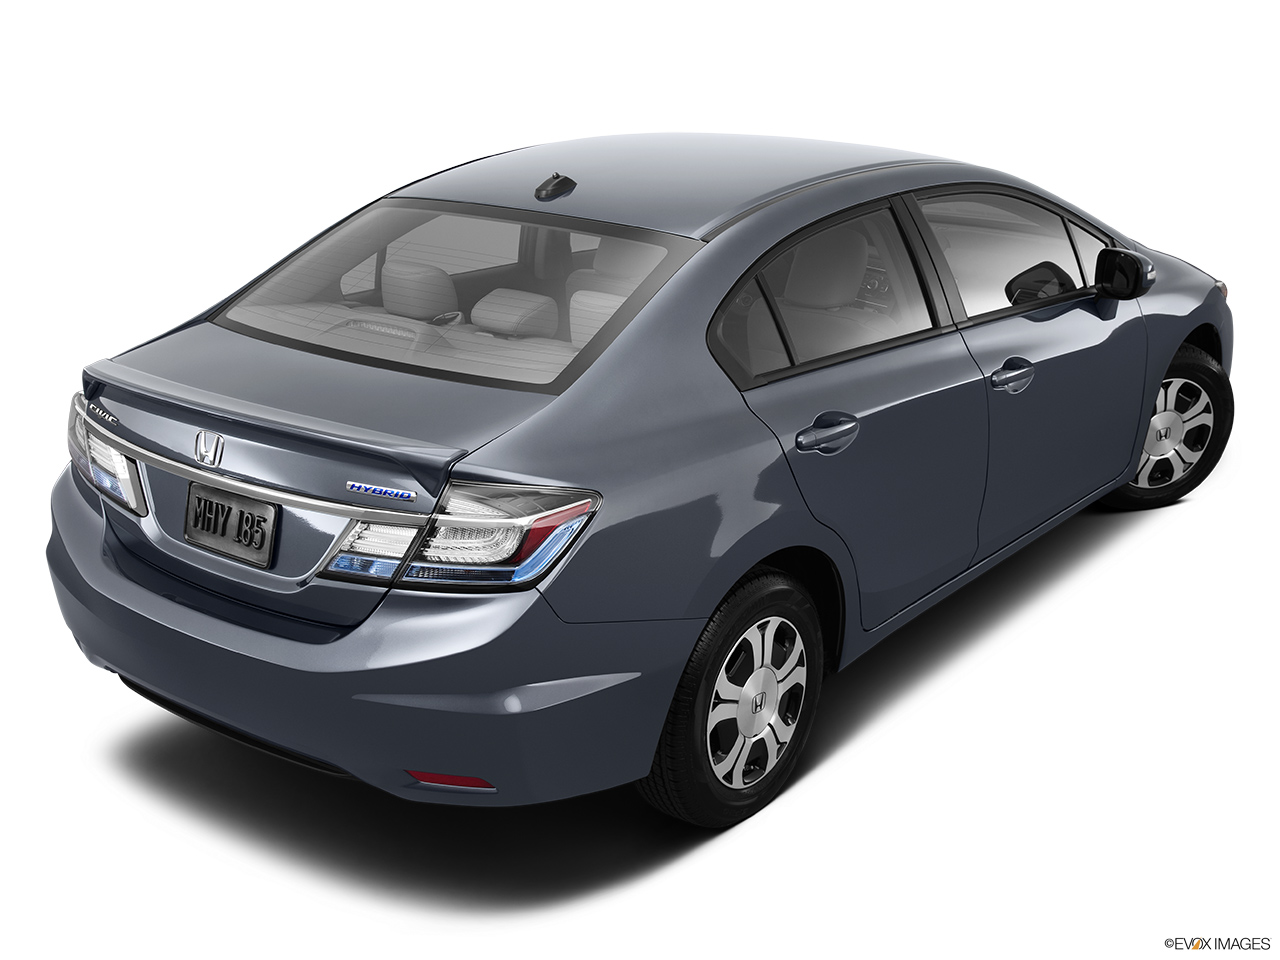 Honda Civic Hybrid Rear 2013 | Apps Directories